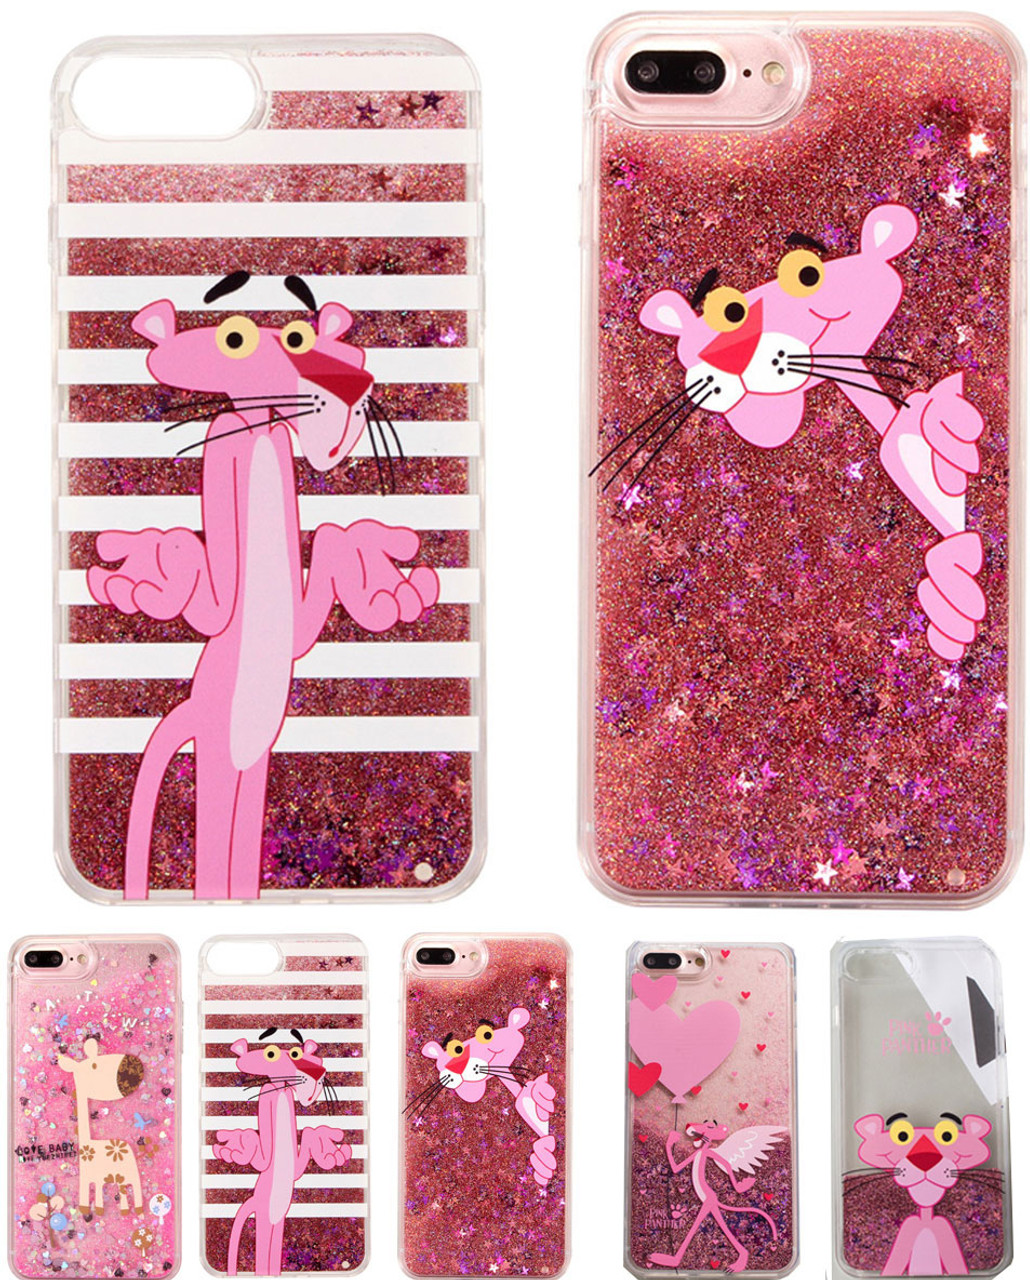 hot sale online d47cb be2a0 Luxury Water Liquid Phone Case for iPhone 8 7 6 6S Plus Cartoon Pink  Panther Leopard Sparkle Glitter Star Soft TPU Cover